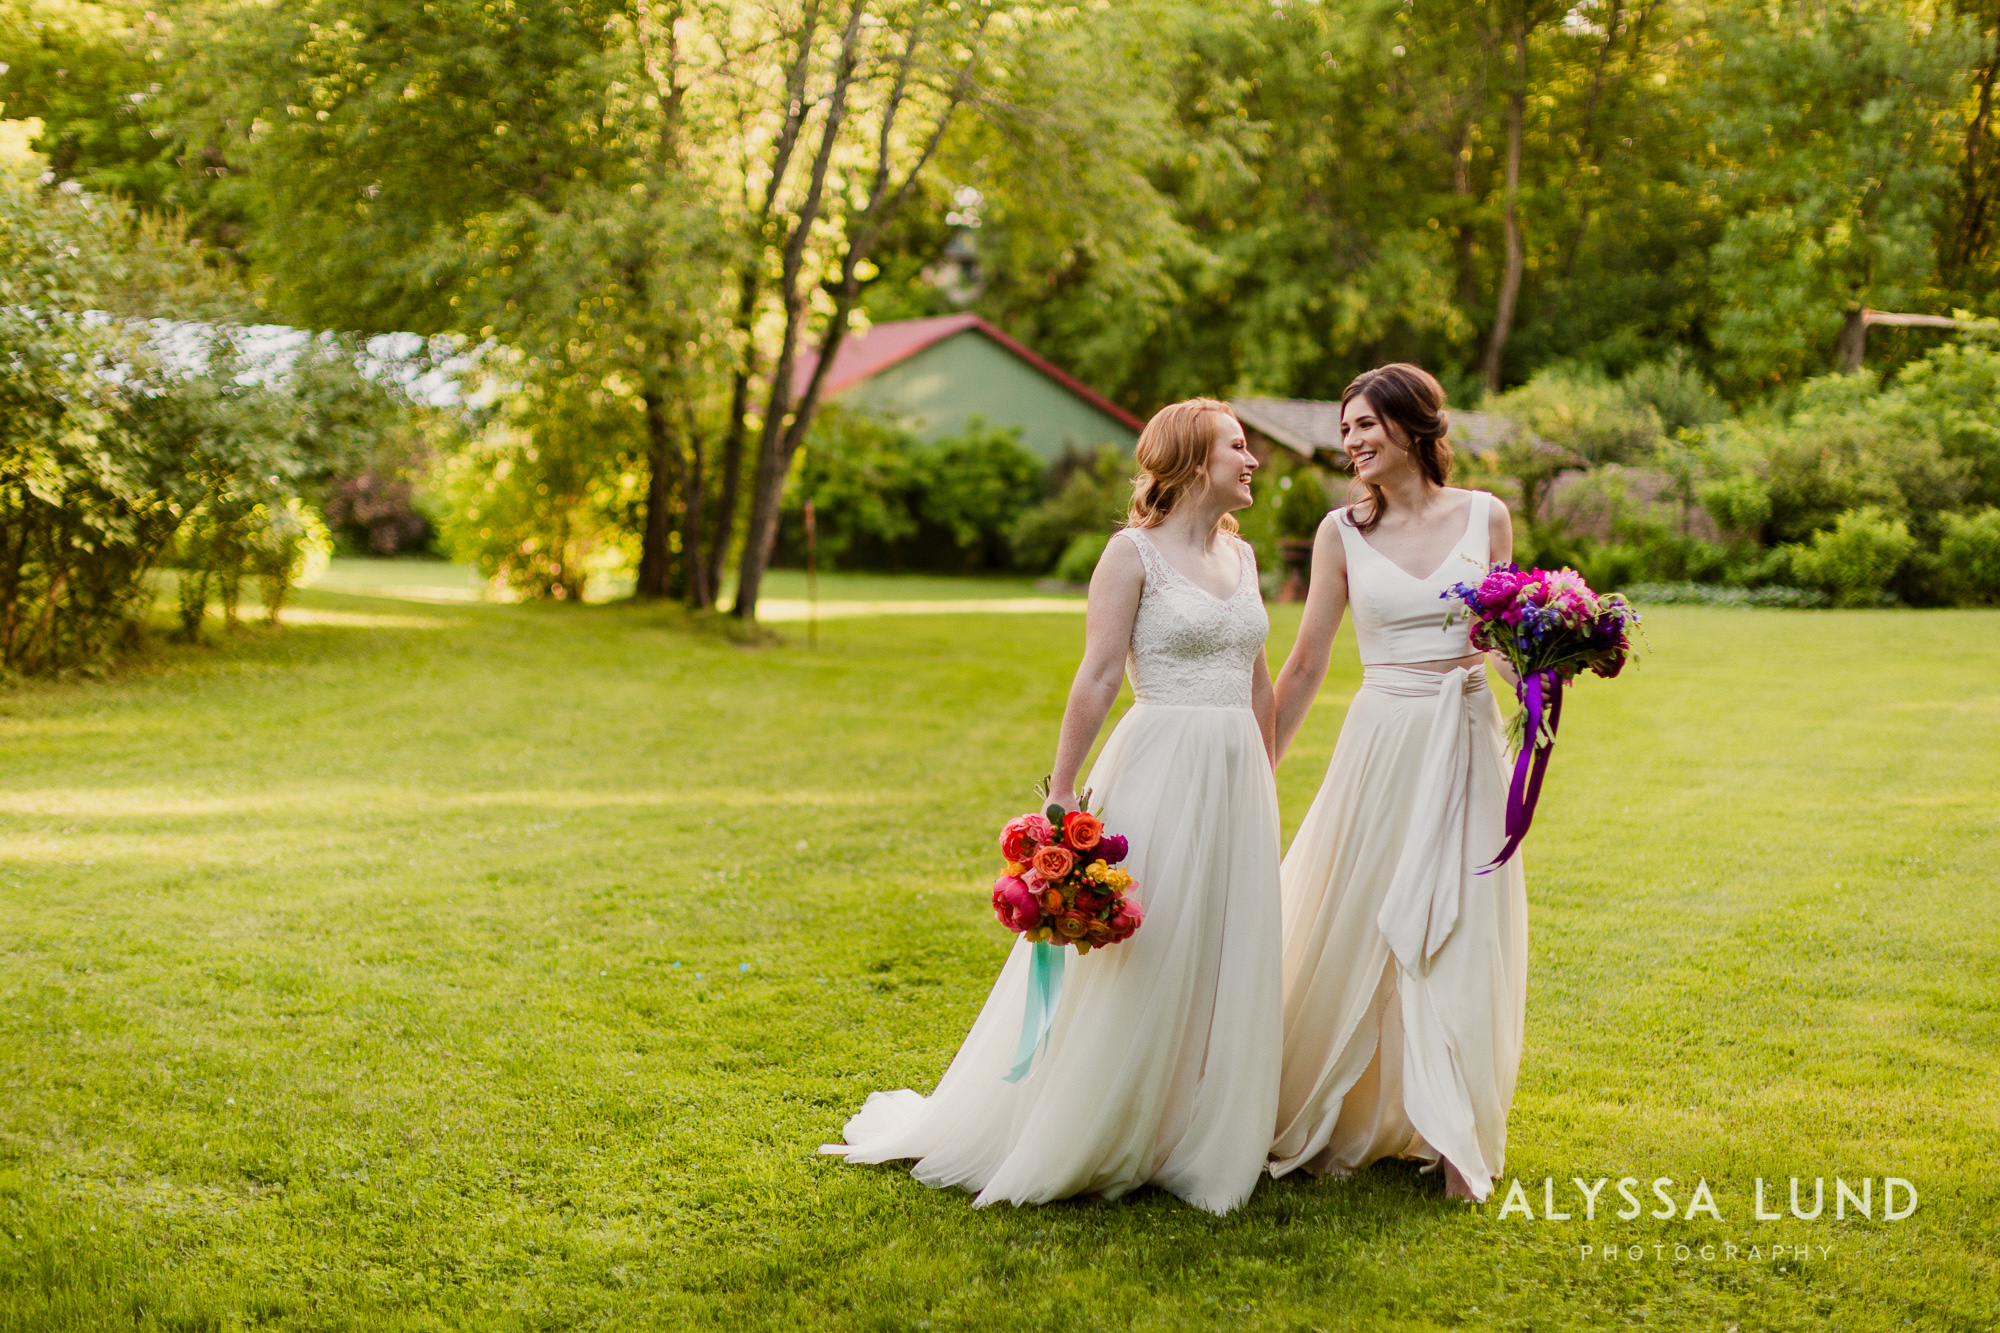 Queer wedding photography inspiration by Alyssa Lund Photography-33.jpg